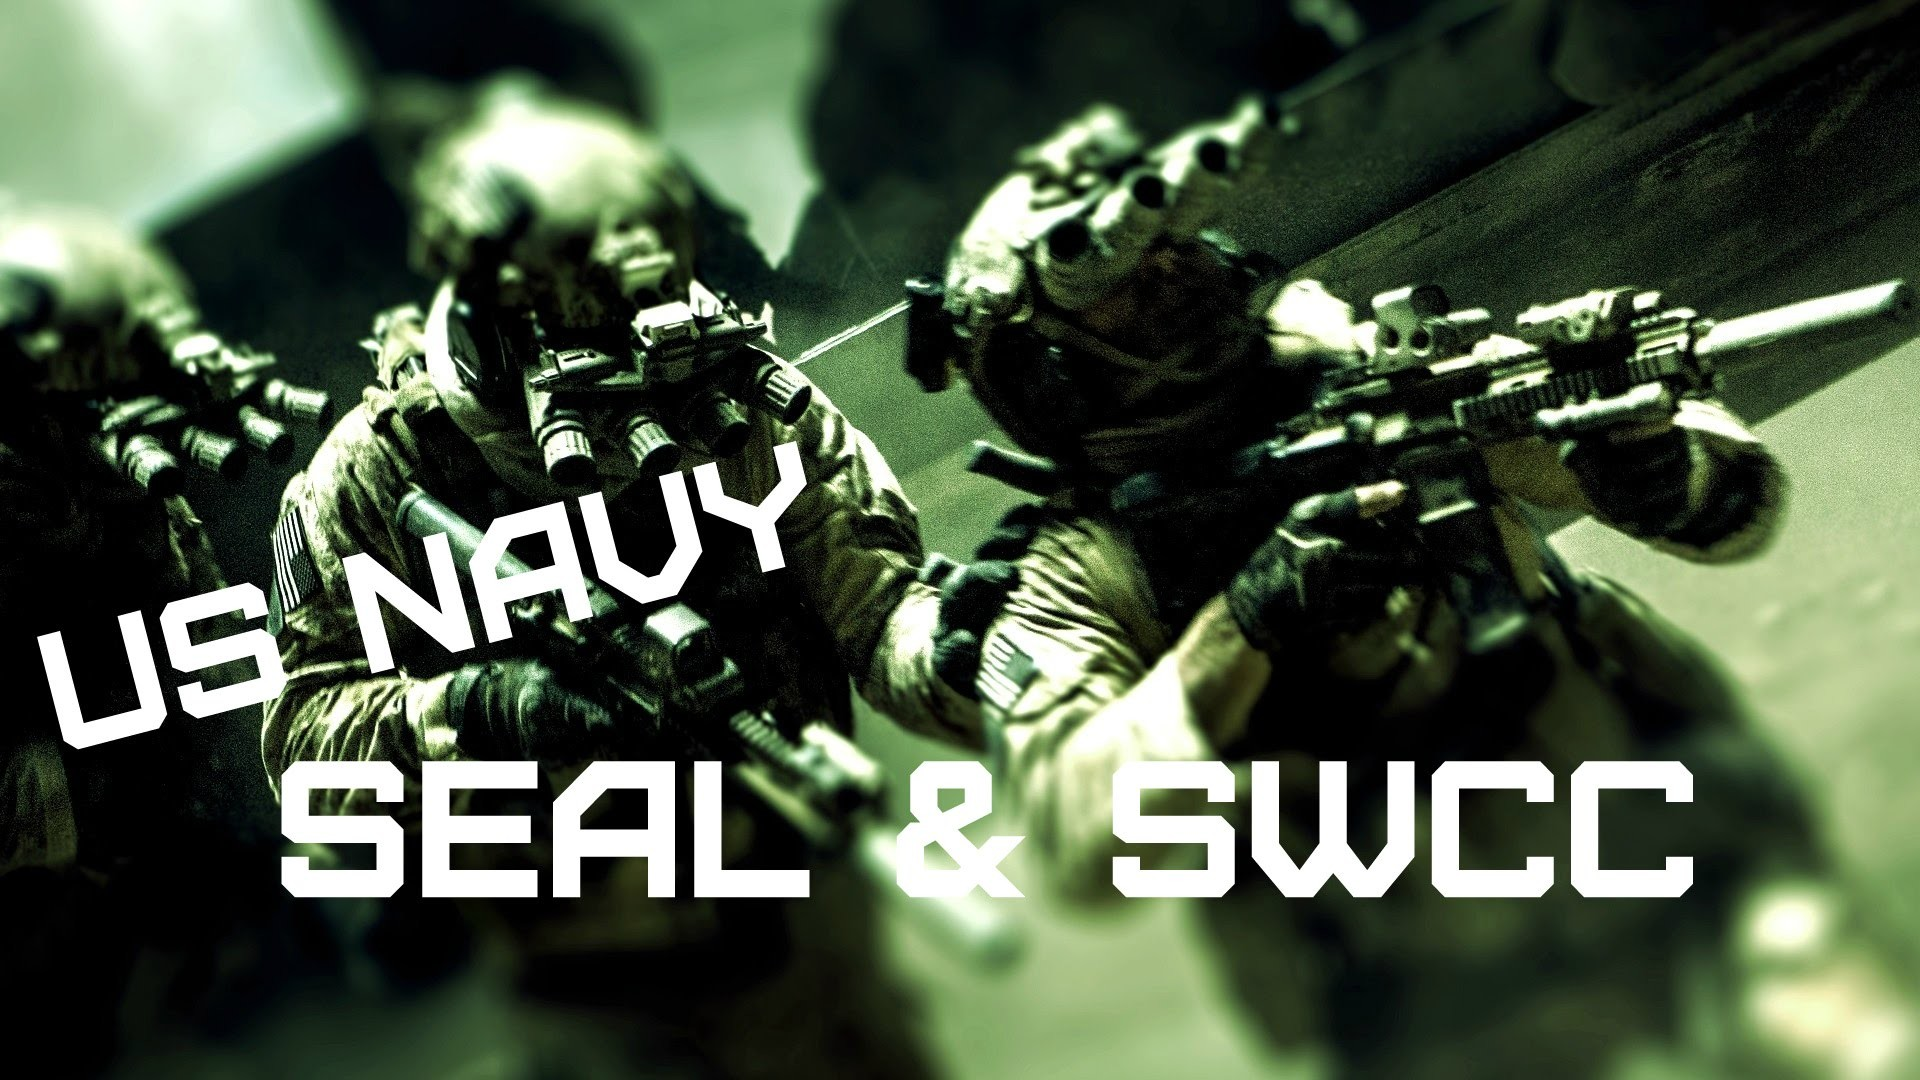 1920x1080 United States Navy • SEALs and SWCC - YouTube